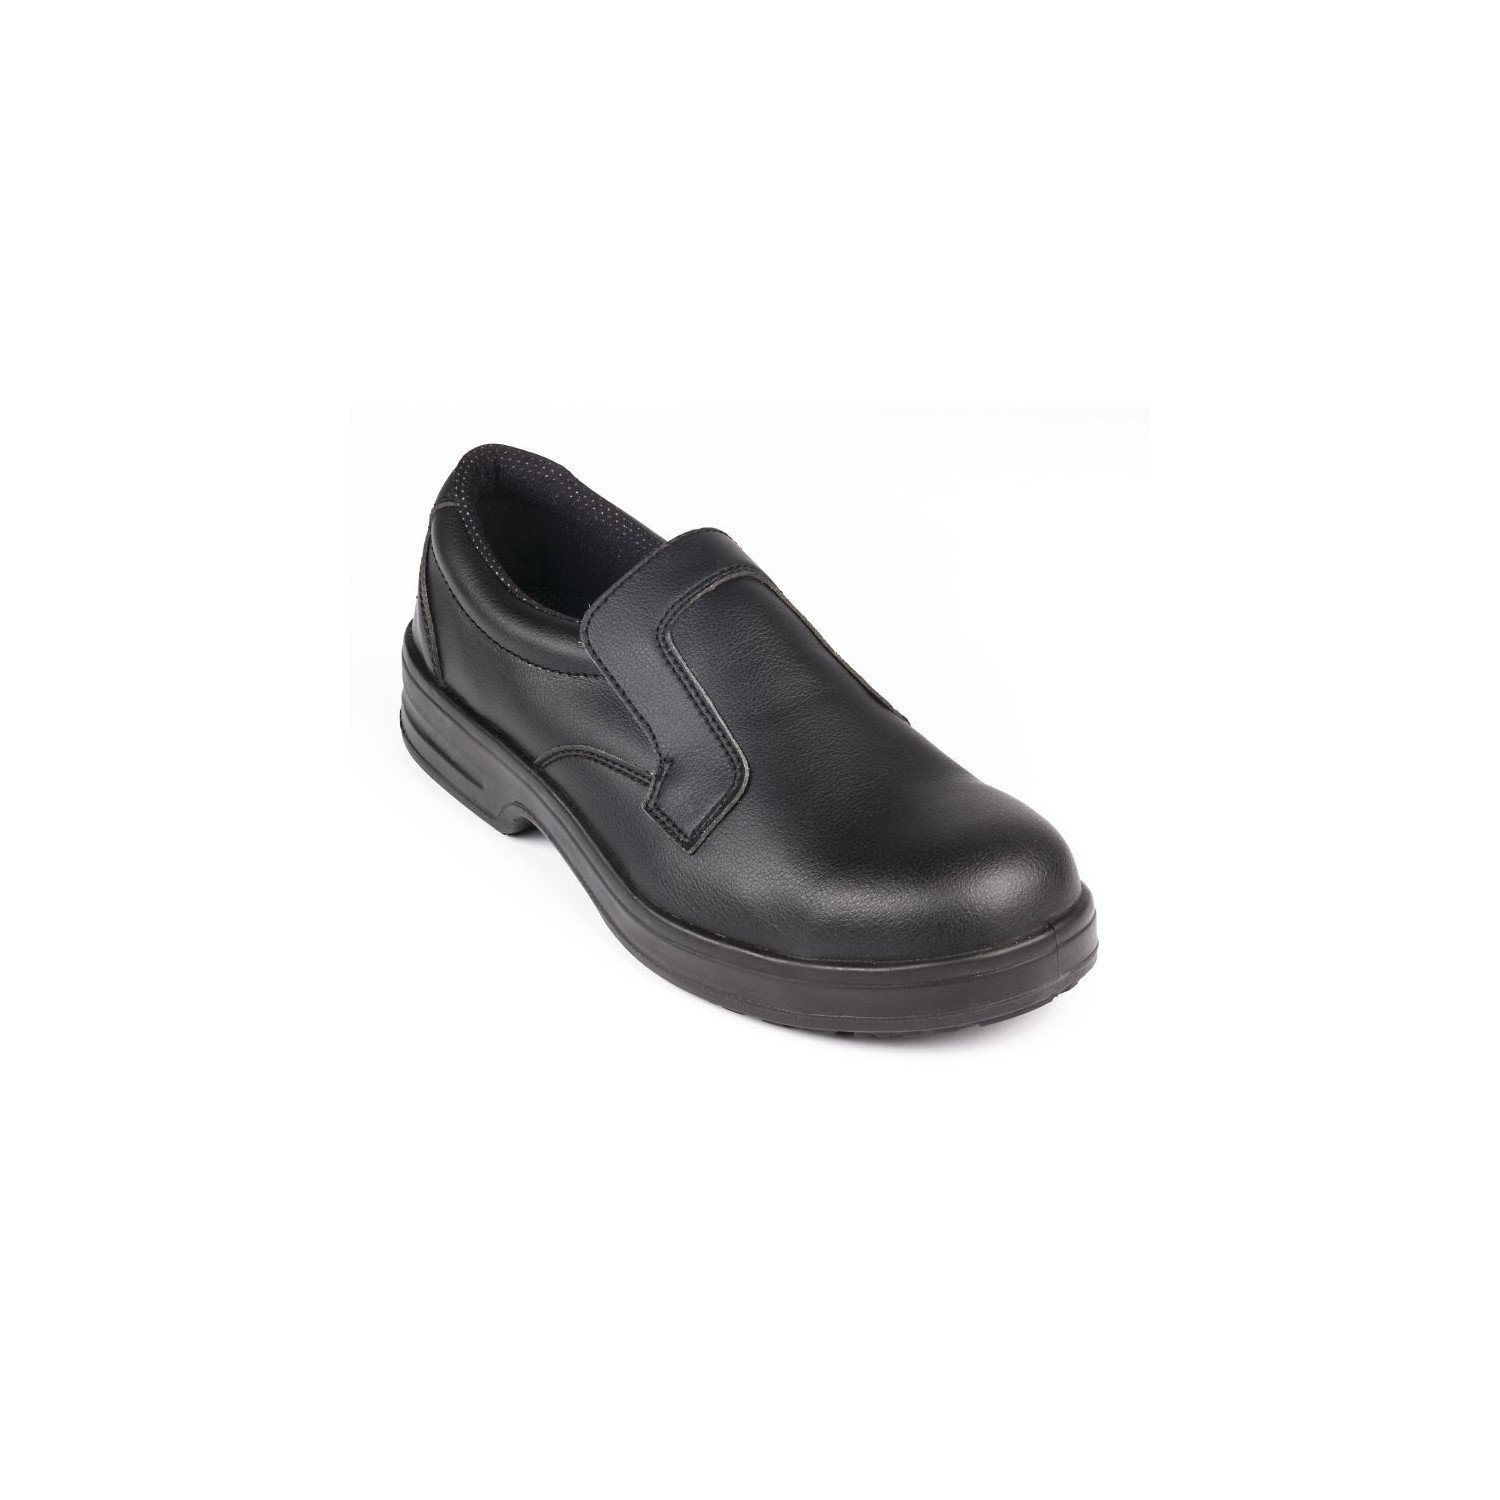 Mocassins imperméables/lavables noirs T.41 LITES SAFETY FOOTWEAR Nisbets Vêtements